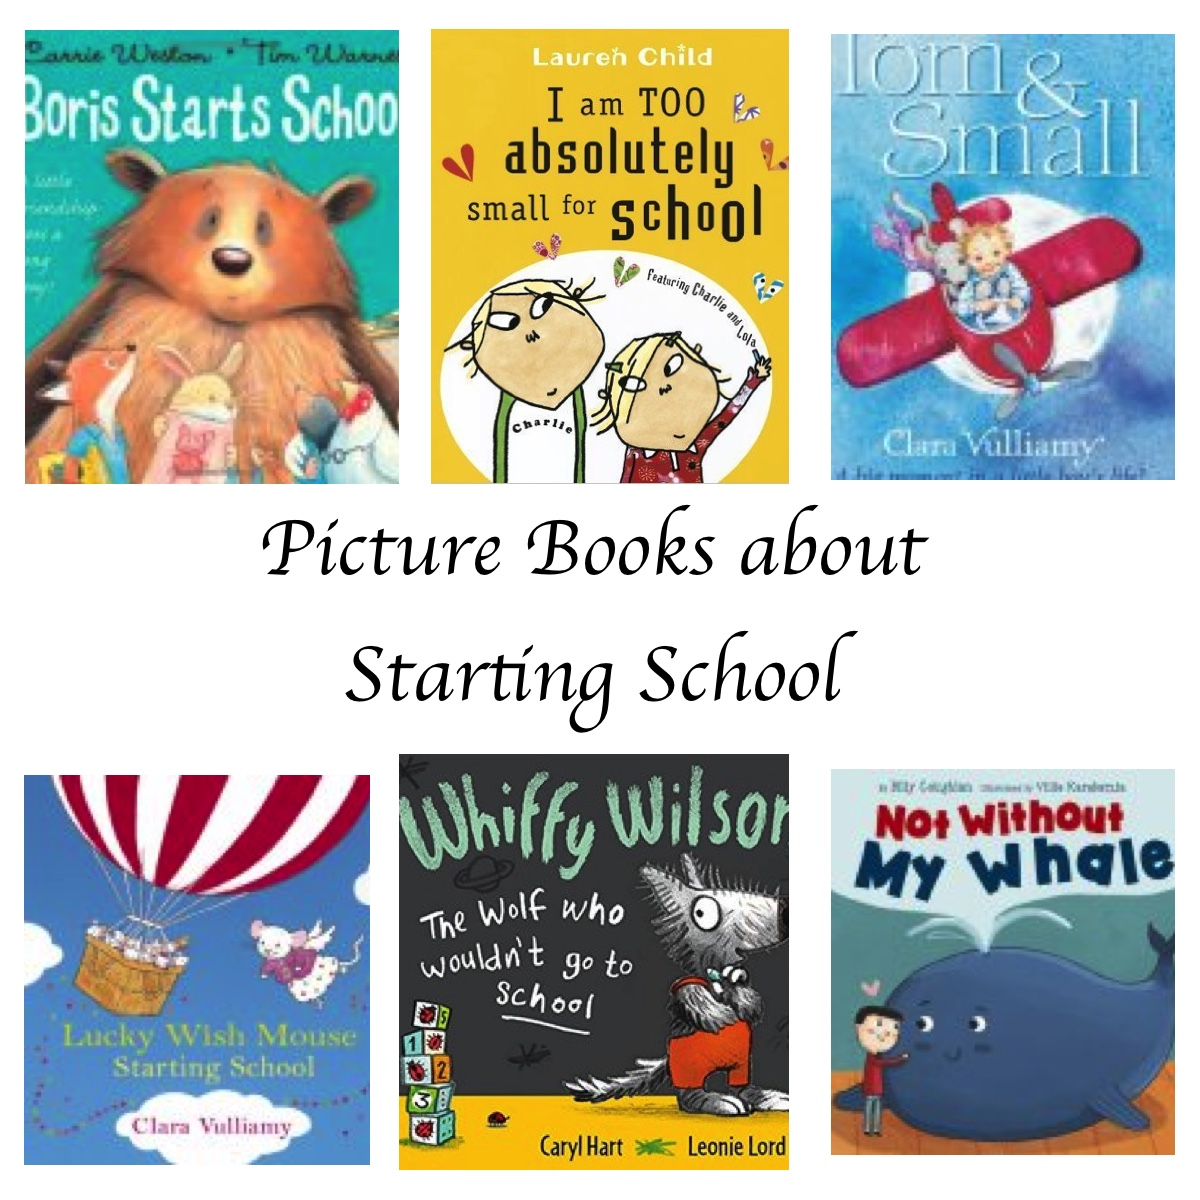 Books to prepare children for their first day of school